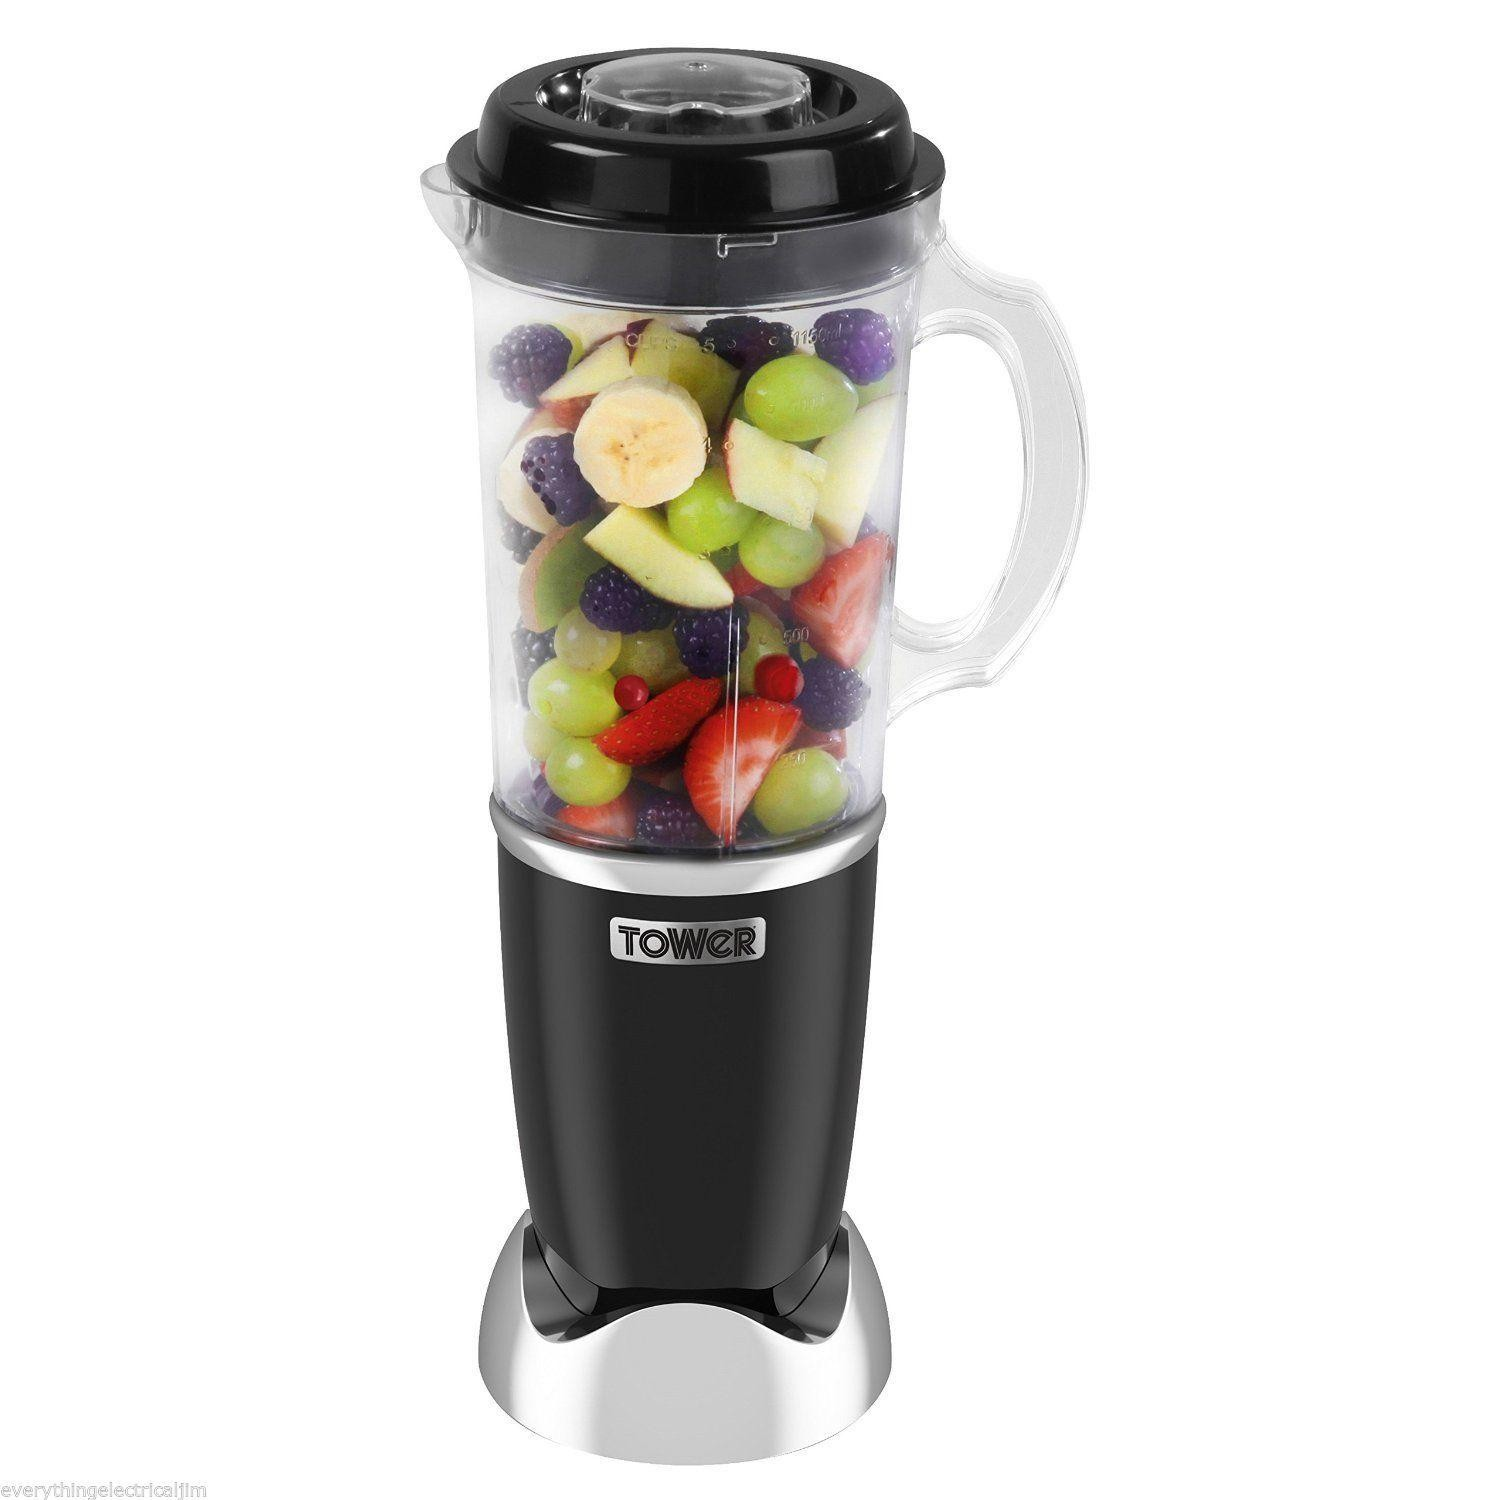 tower-t12002-21-piece-vita-blend-in-black-blend-mix-juice-chop-[2]-3475-p.jpg